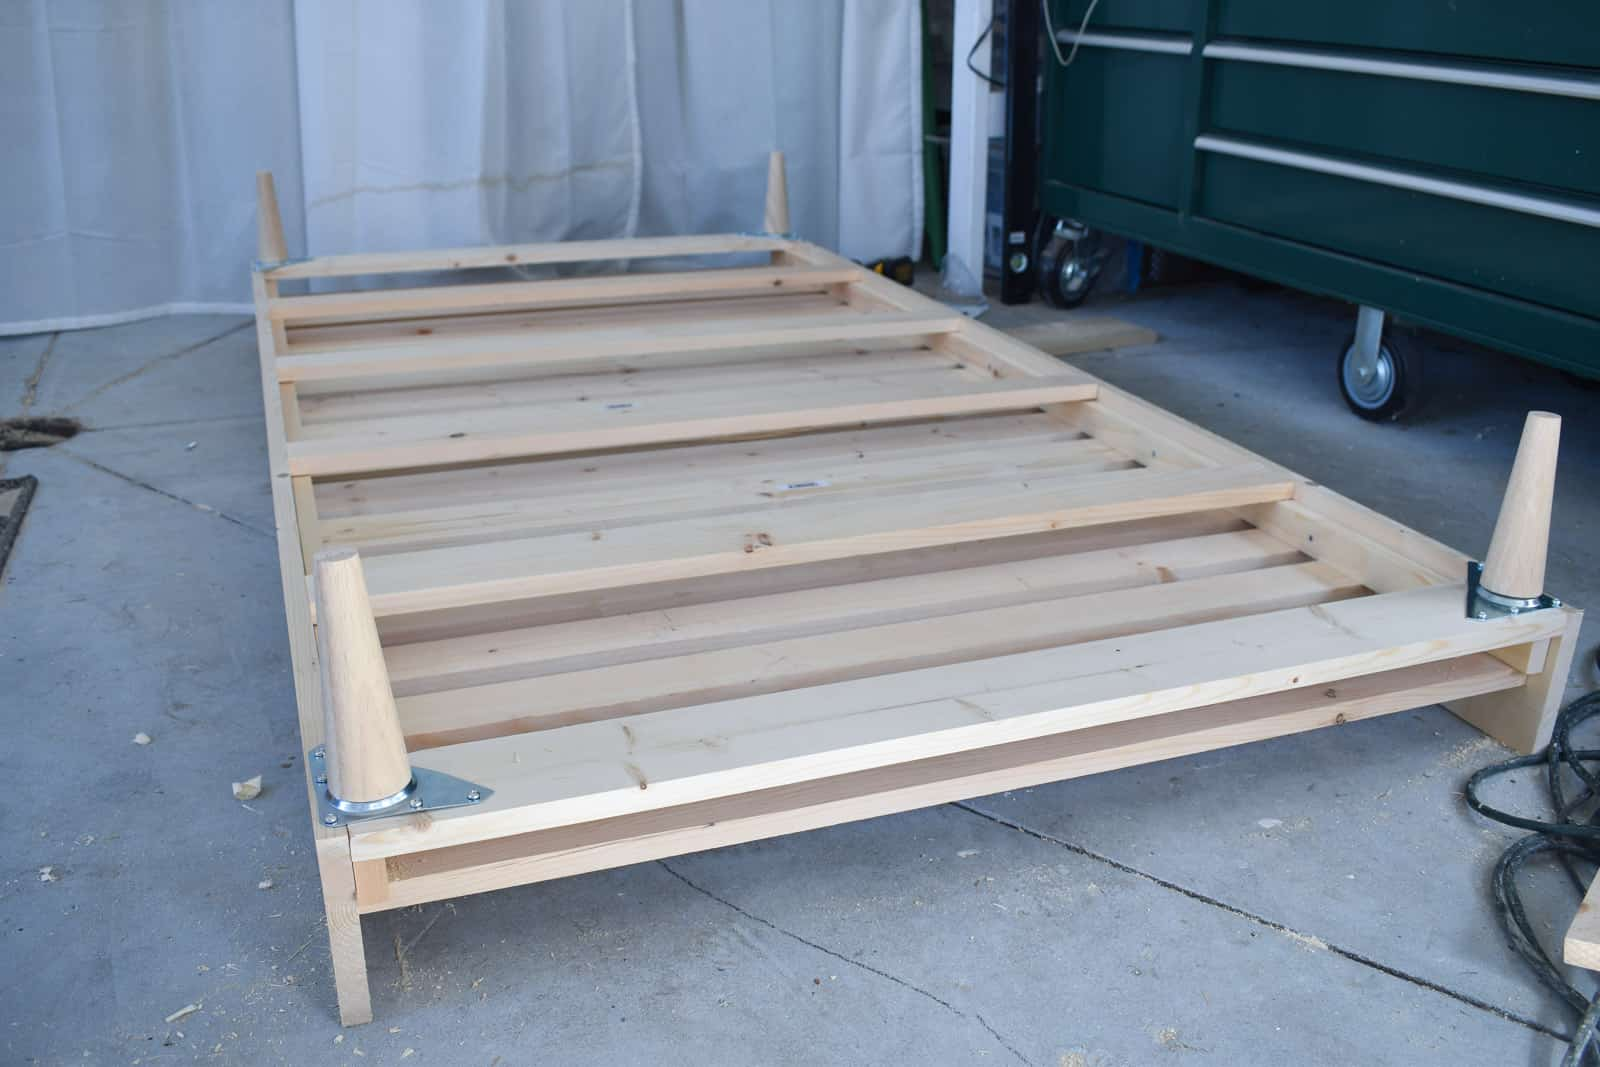 daybed frame with legs